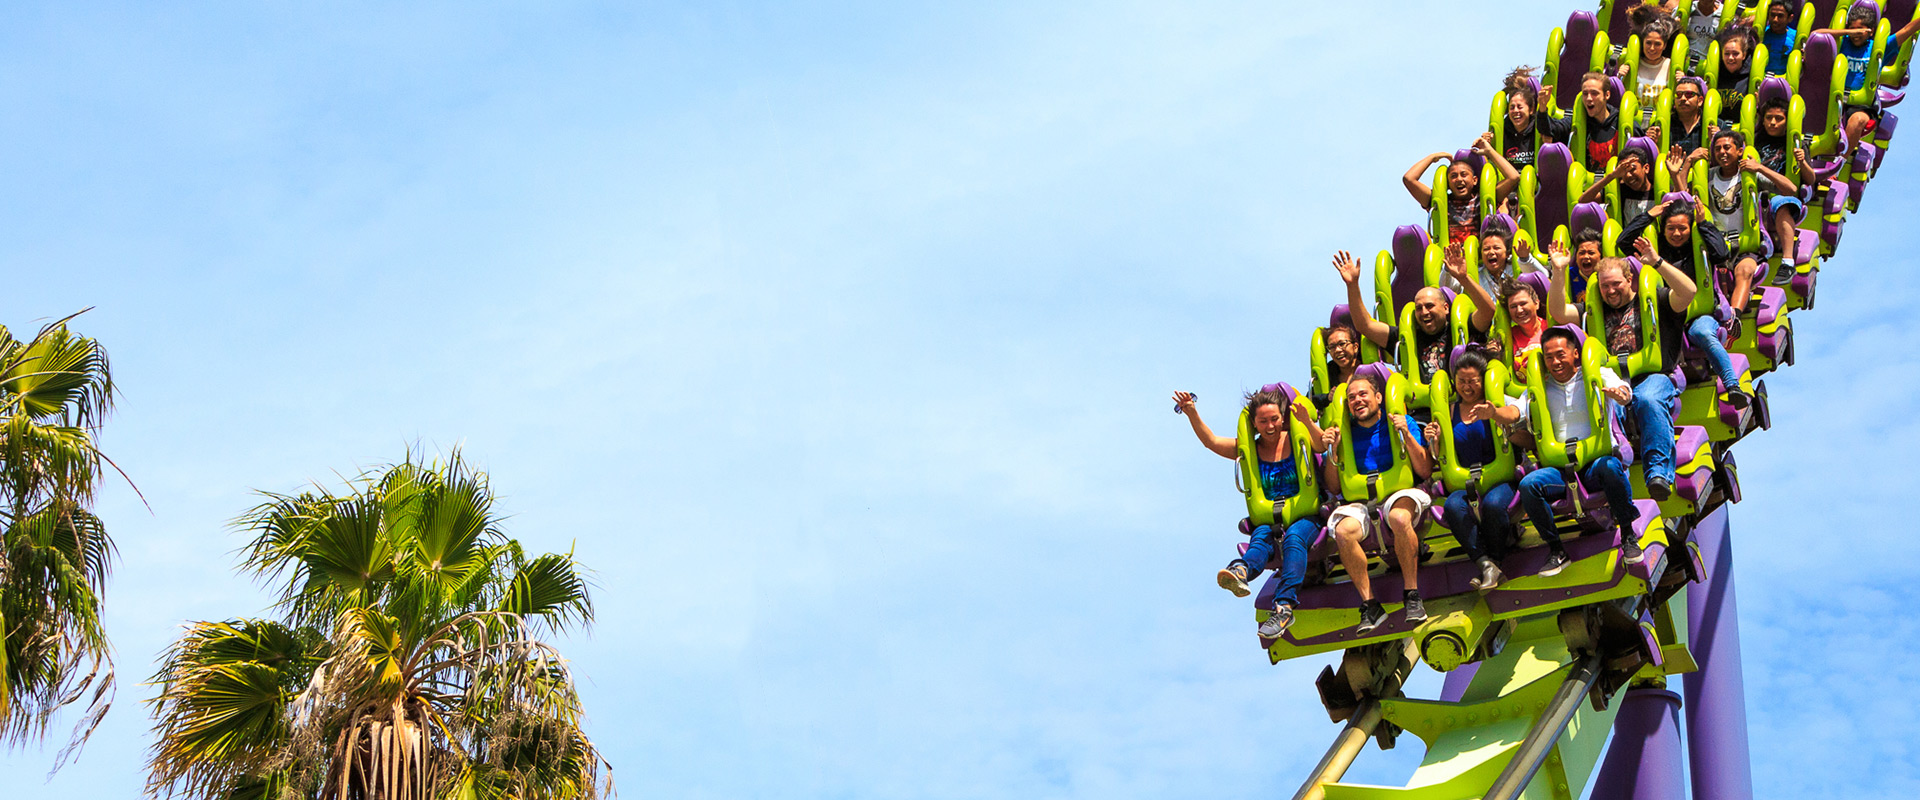 people enjoying customer experience on roller coaster